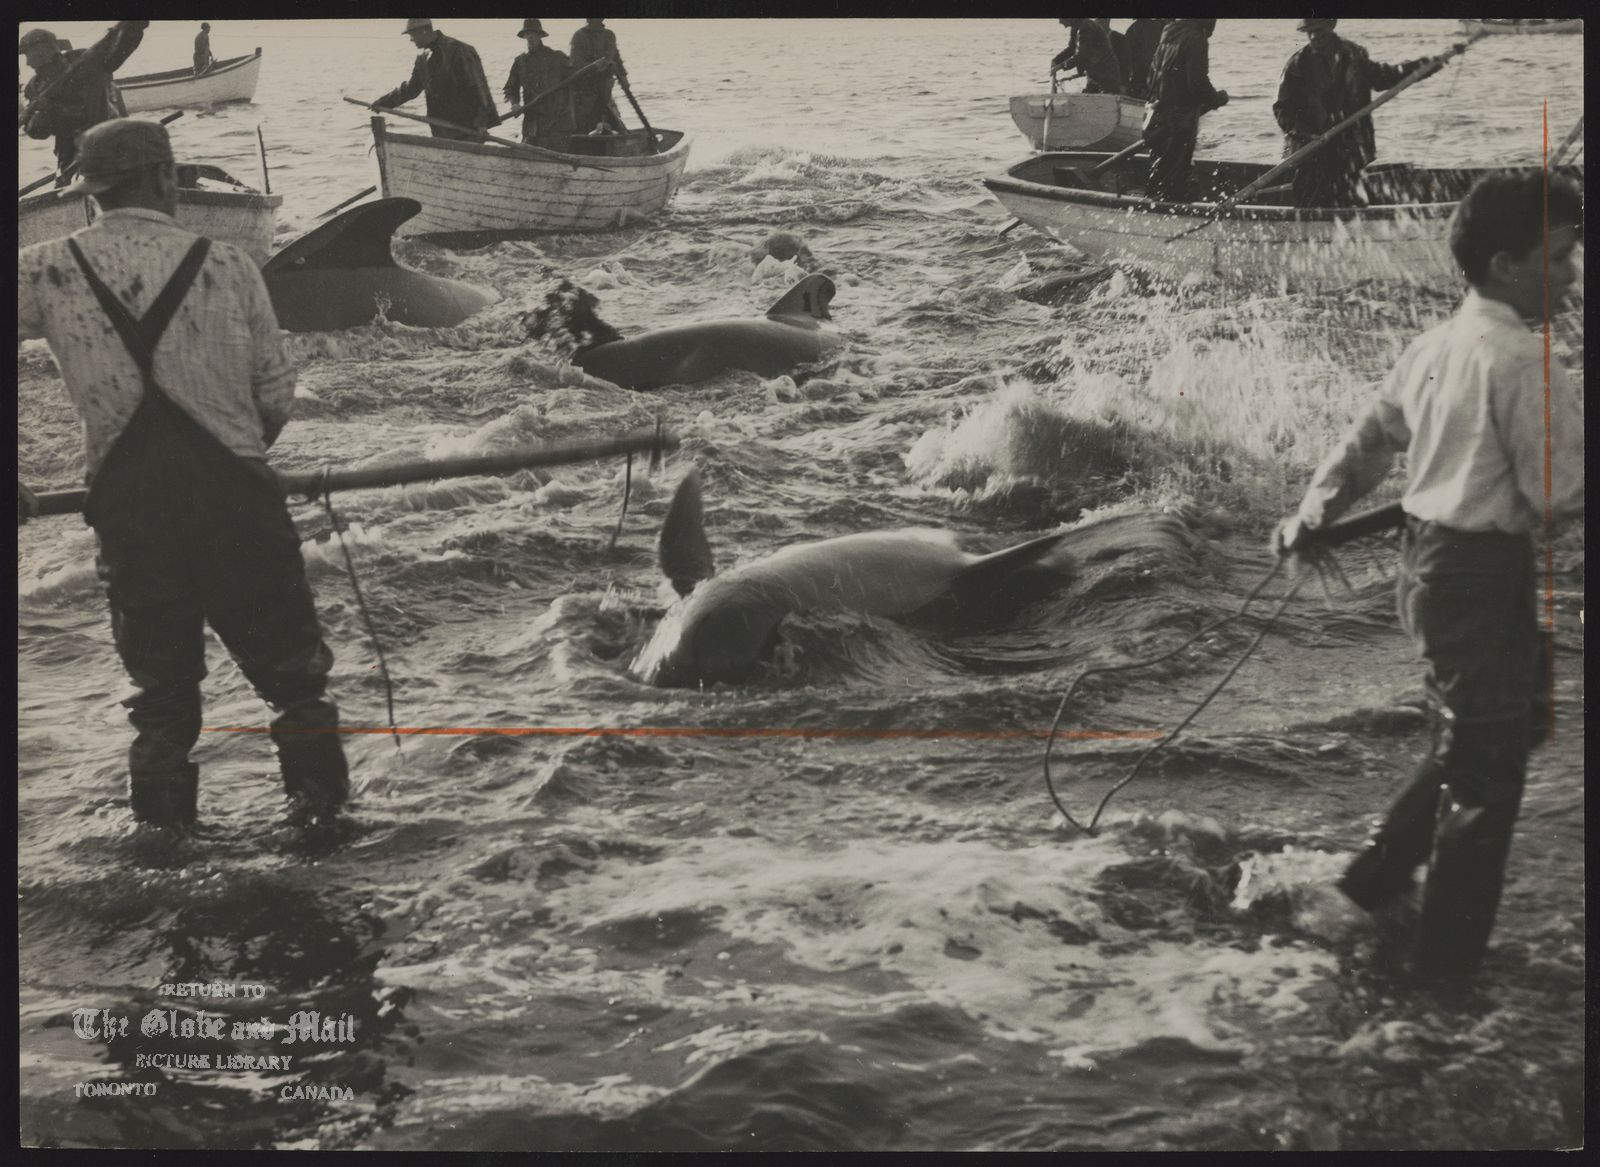 WHALING Landed whales are cut up and meat is sold as food for mink in Newfoundland.